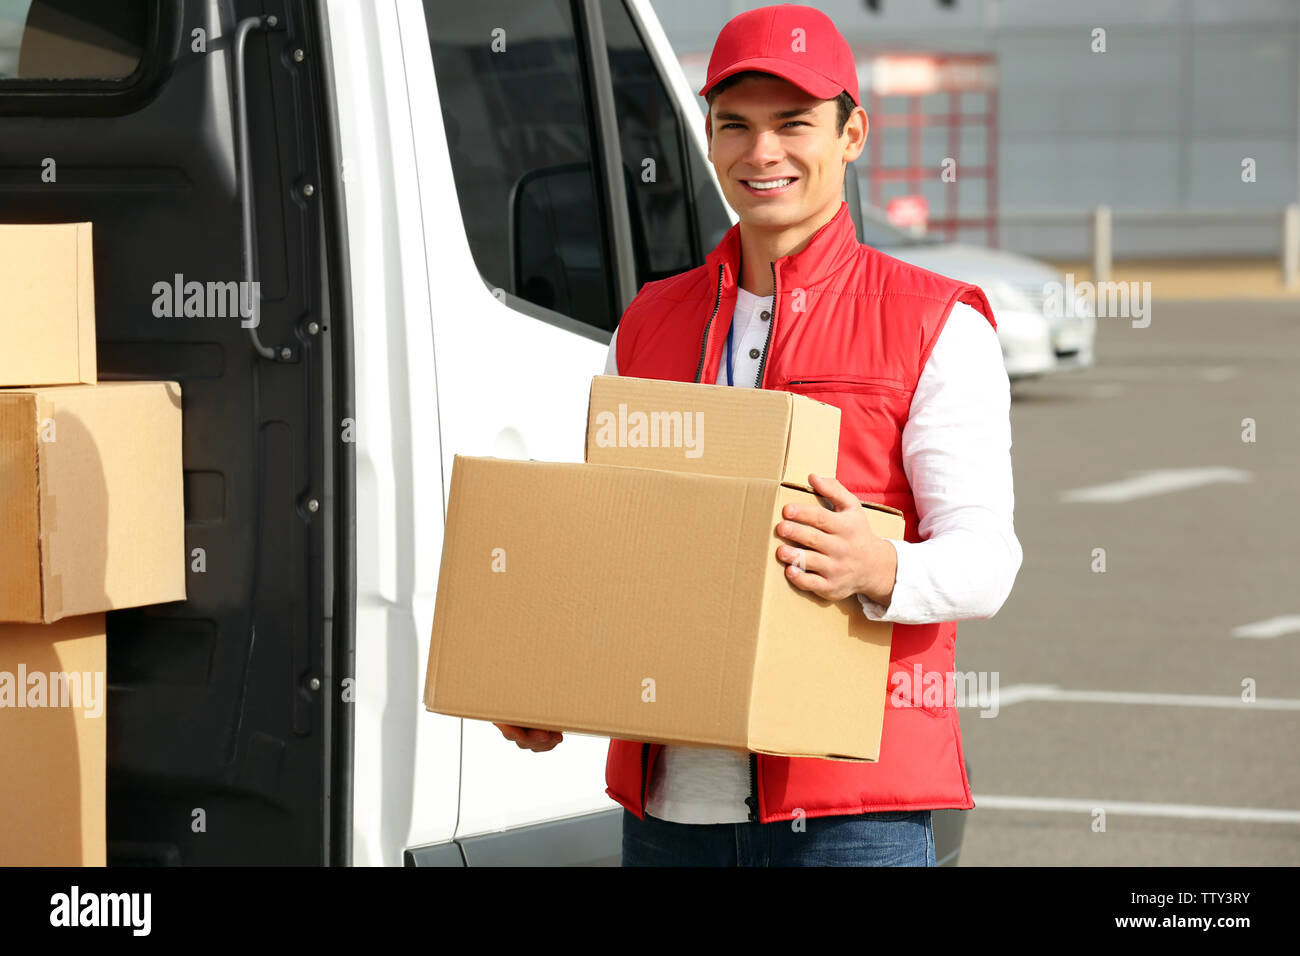 Young male courier with parcels near delivery service van - Stock Image